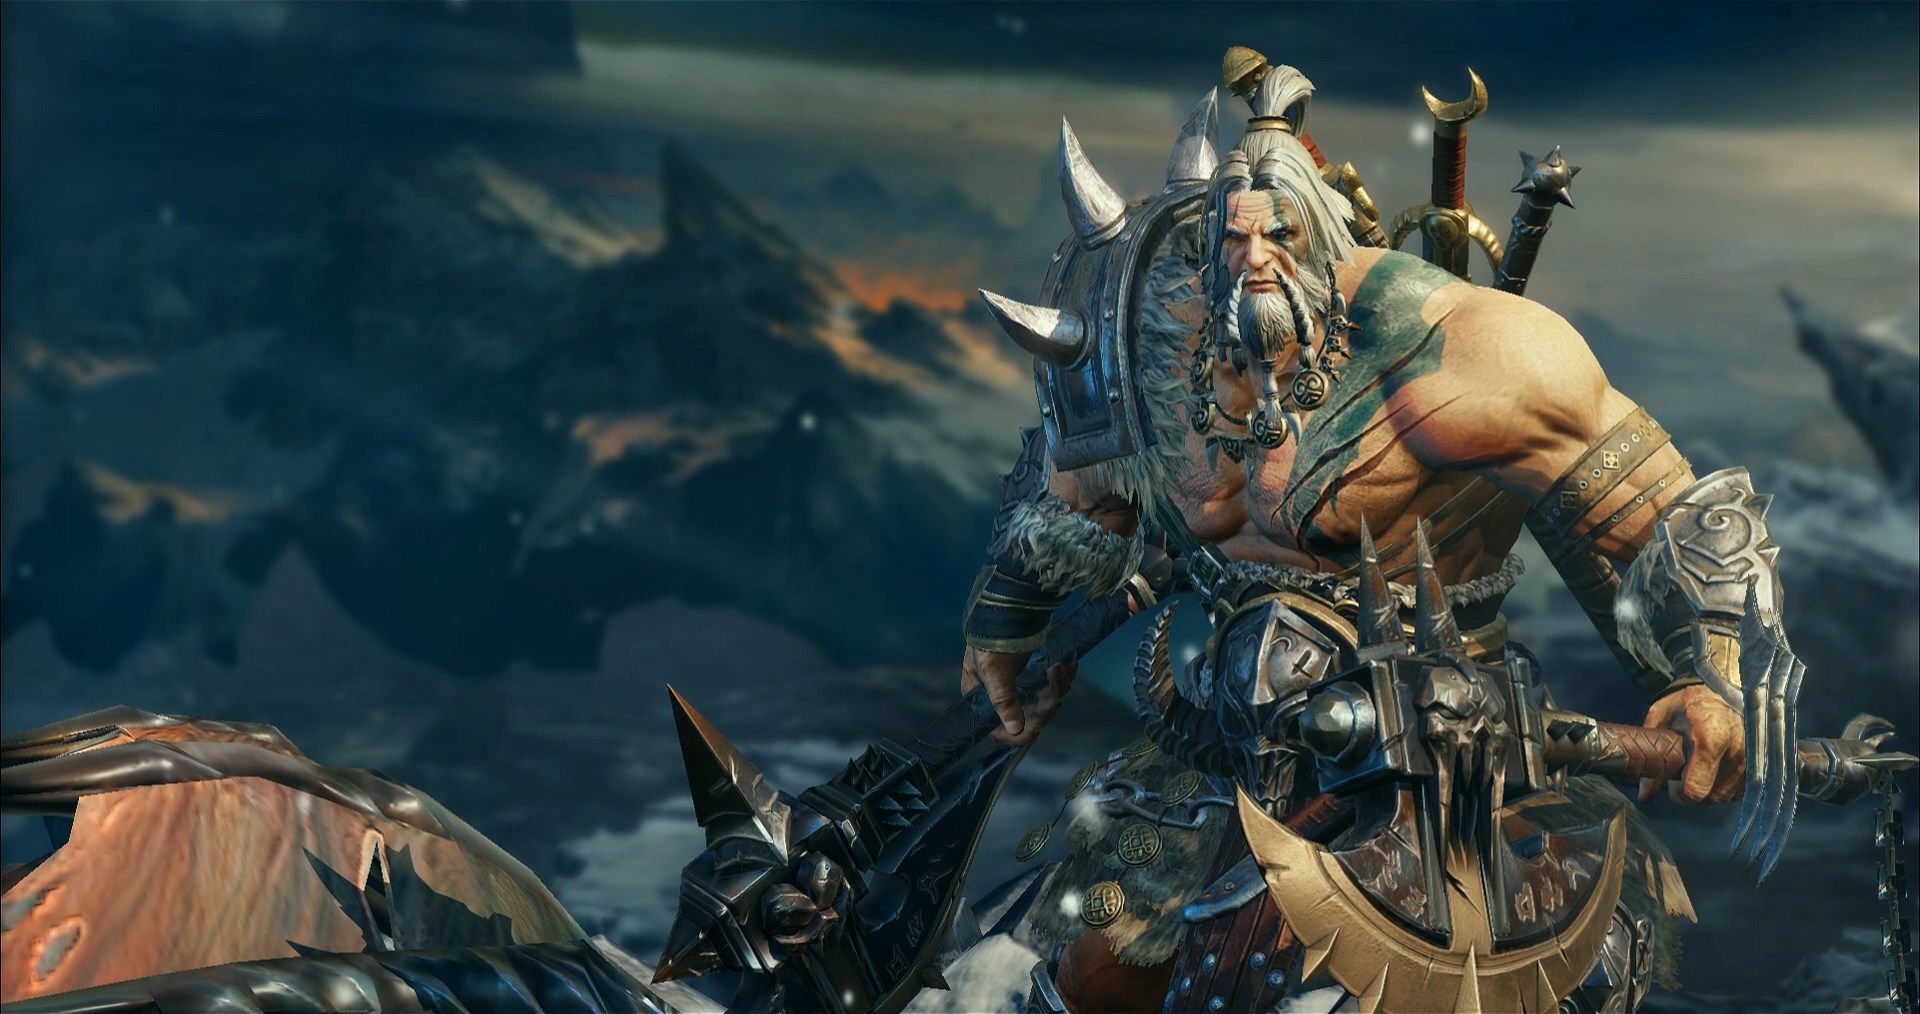 Photo of [UPDATE] Blizzard Reportedly Pulled Diablo 4 Announcement from BlizzCon